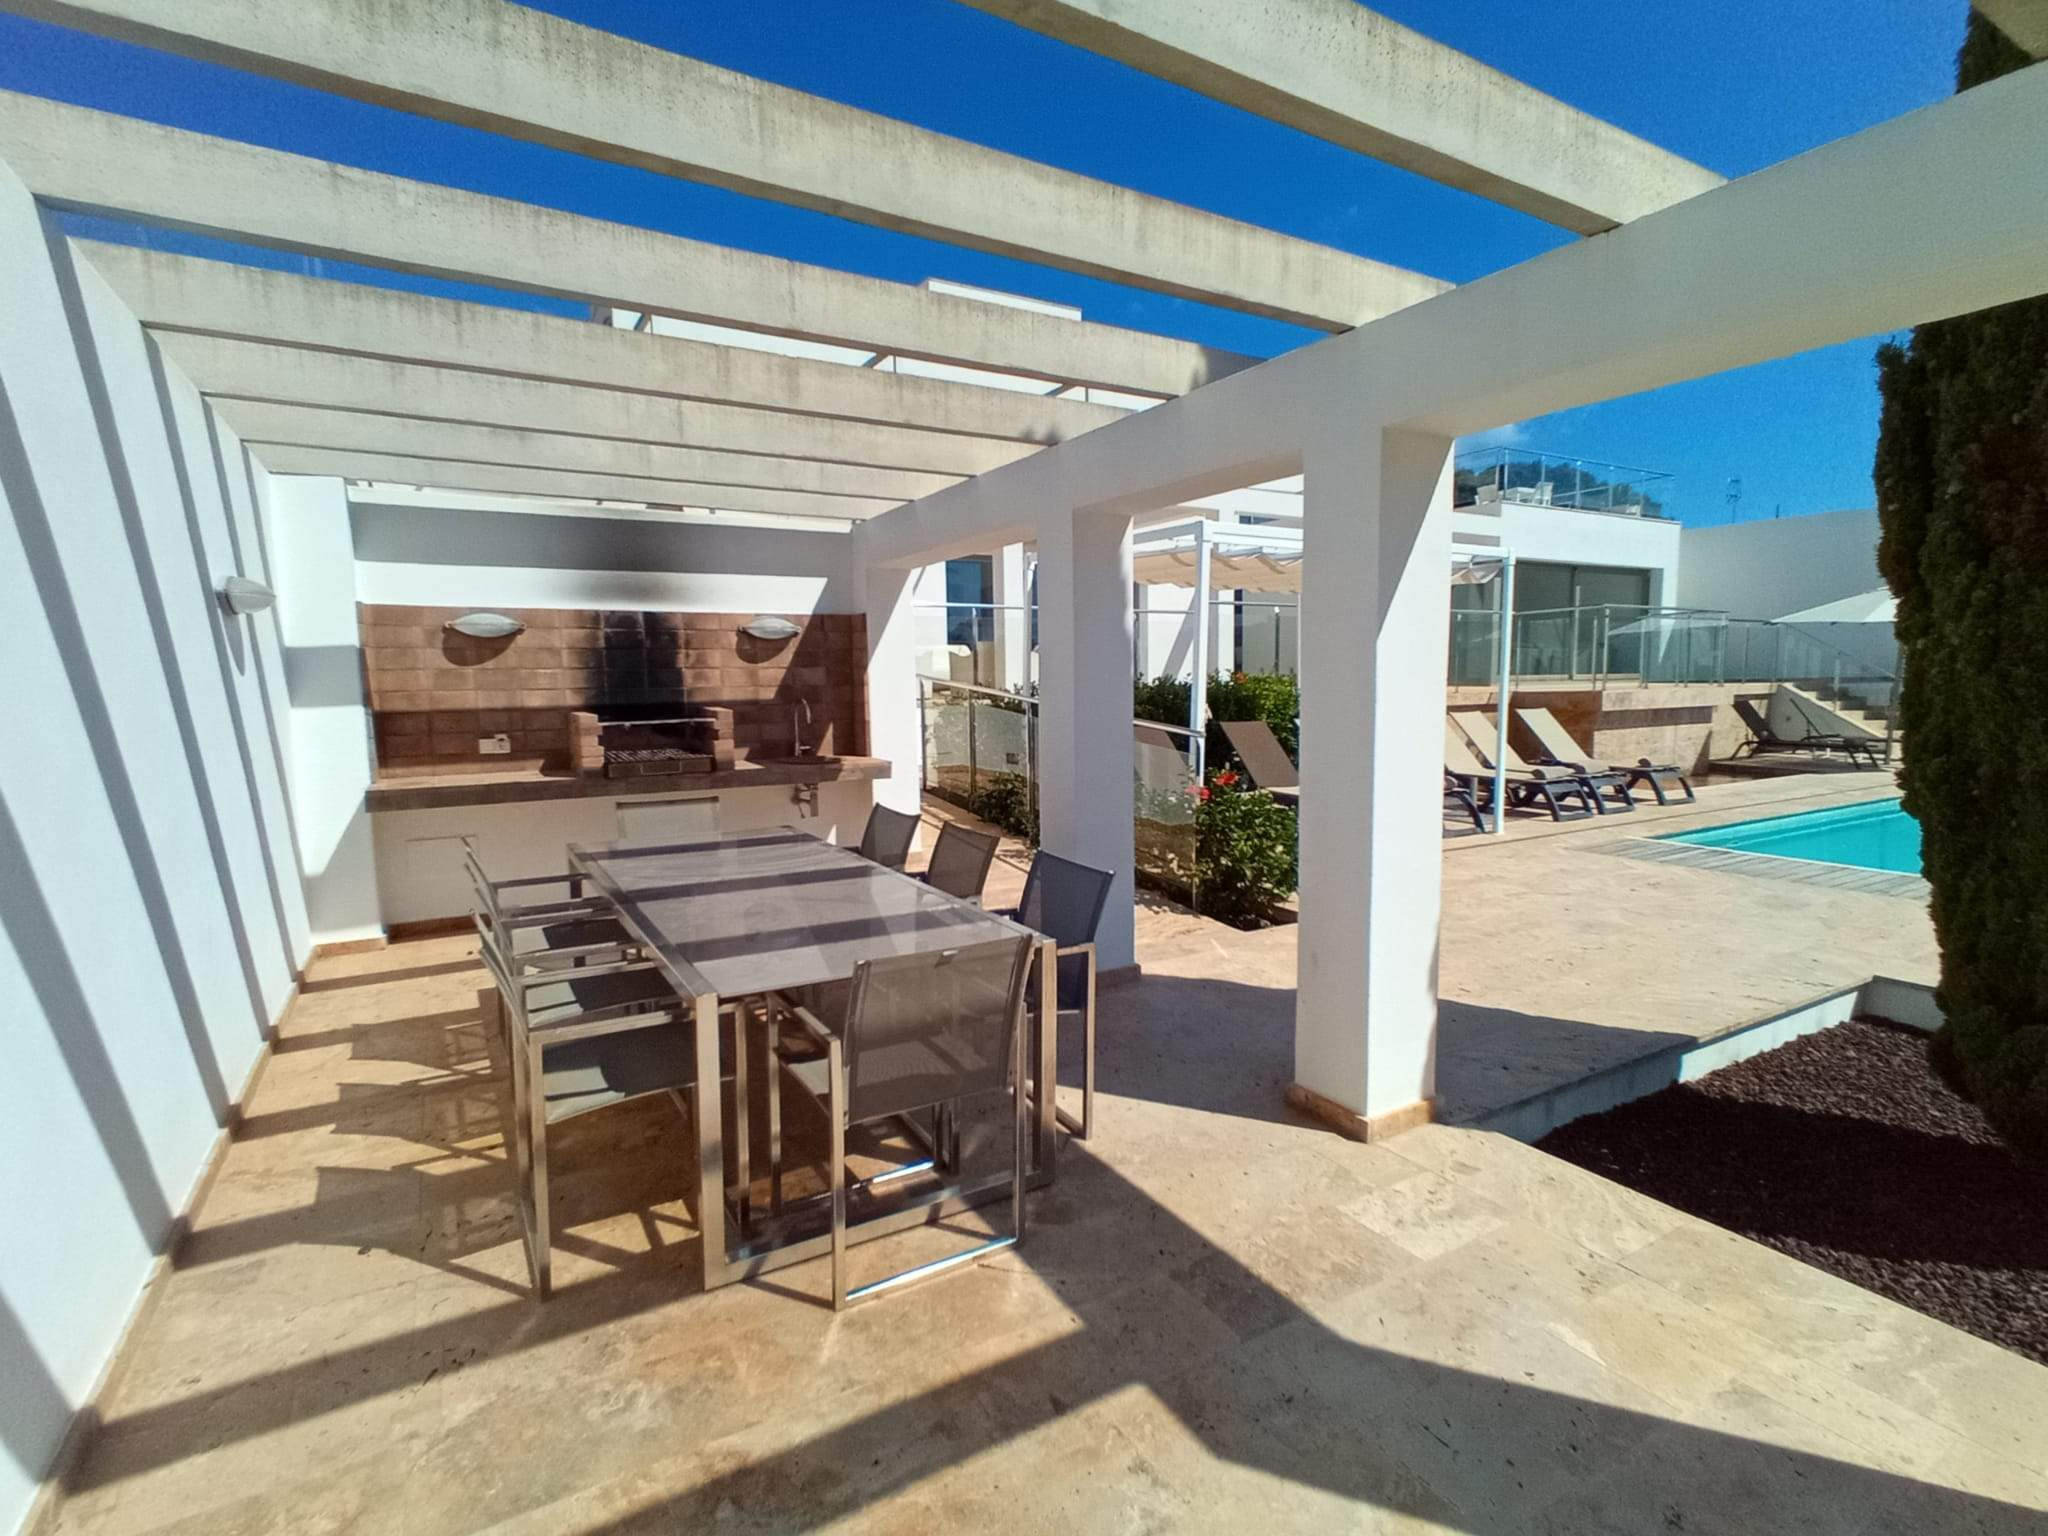 Casa Pitiusa, 4 Bedroom rate, 4 bedroom villa in Mahon, San Luis & South East, Menorca Photo #2